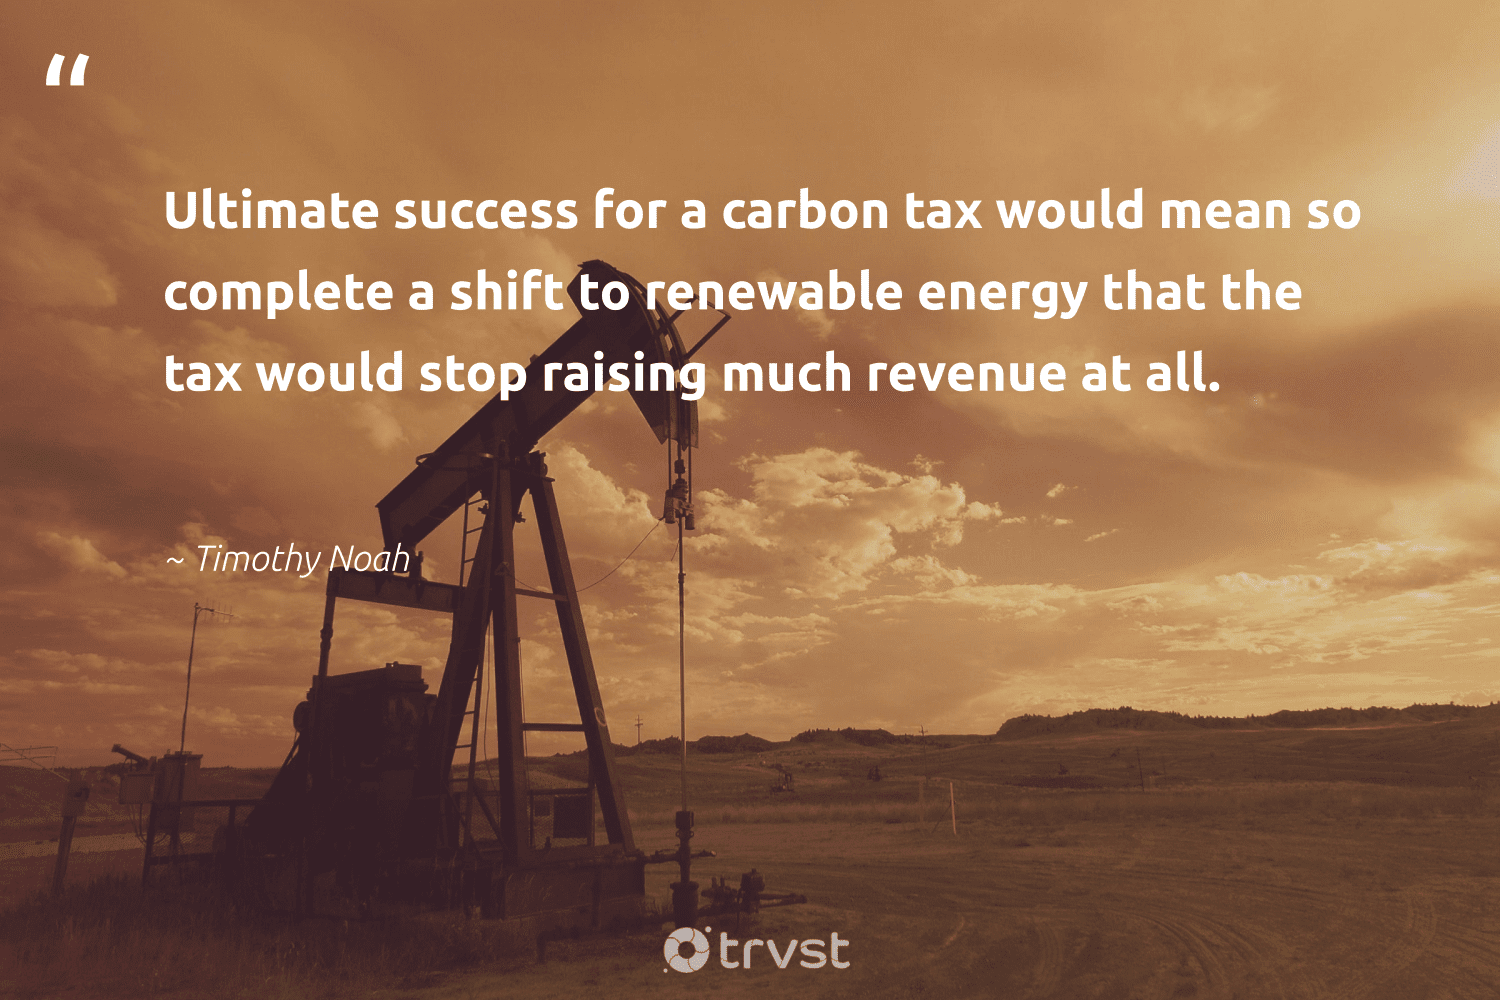 """""""Ultimate success for a carbon tax would mean so complete a shift to renewable energy that the tax would stop raising much revenue at all.""""  - Timothy Noah #trvst #quotes #renewableenergy #carbon #energy #renewable #success #greenenergy #affordable #parisagreement #cop21 #dotherightthing"""